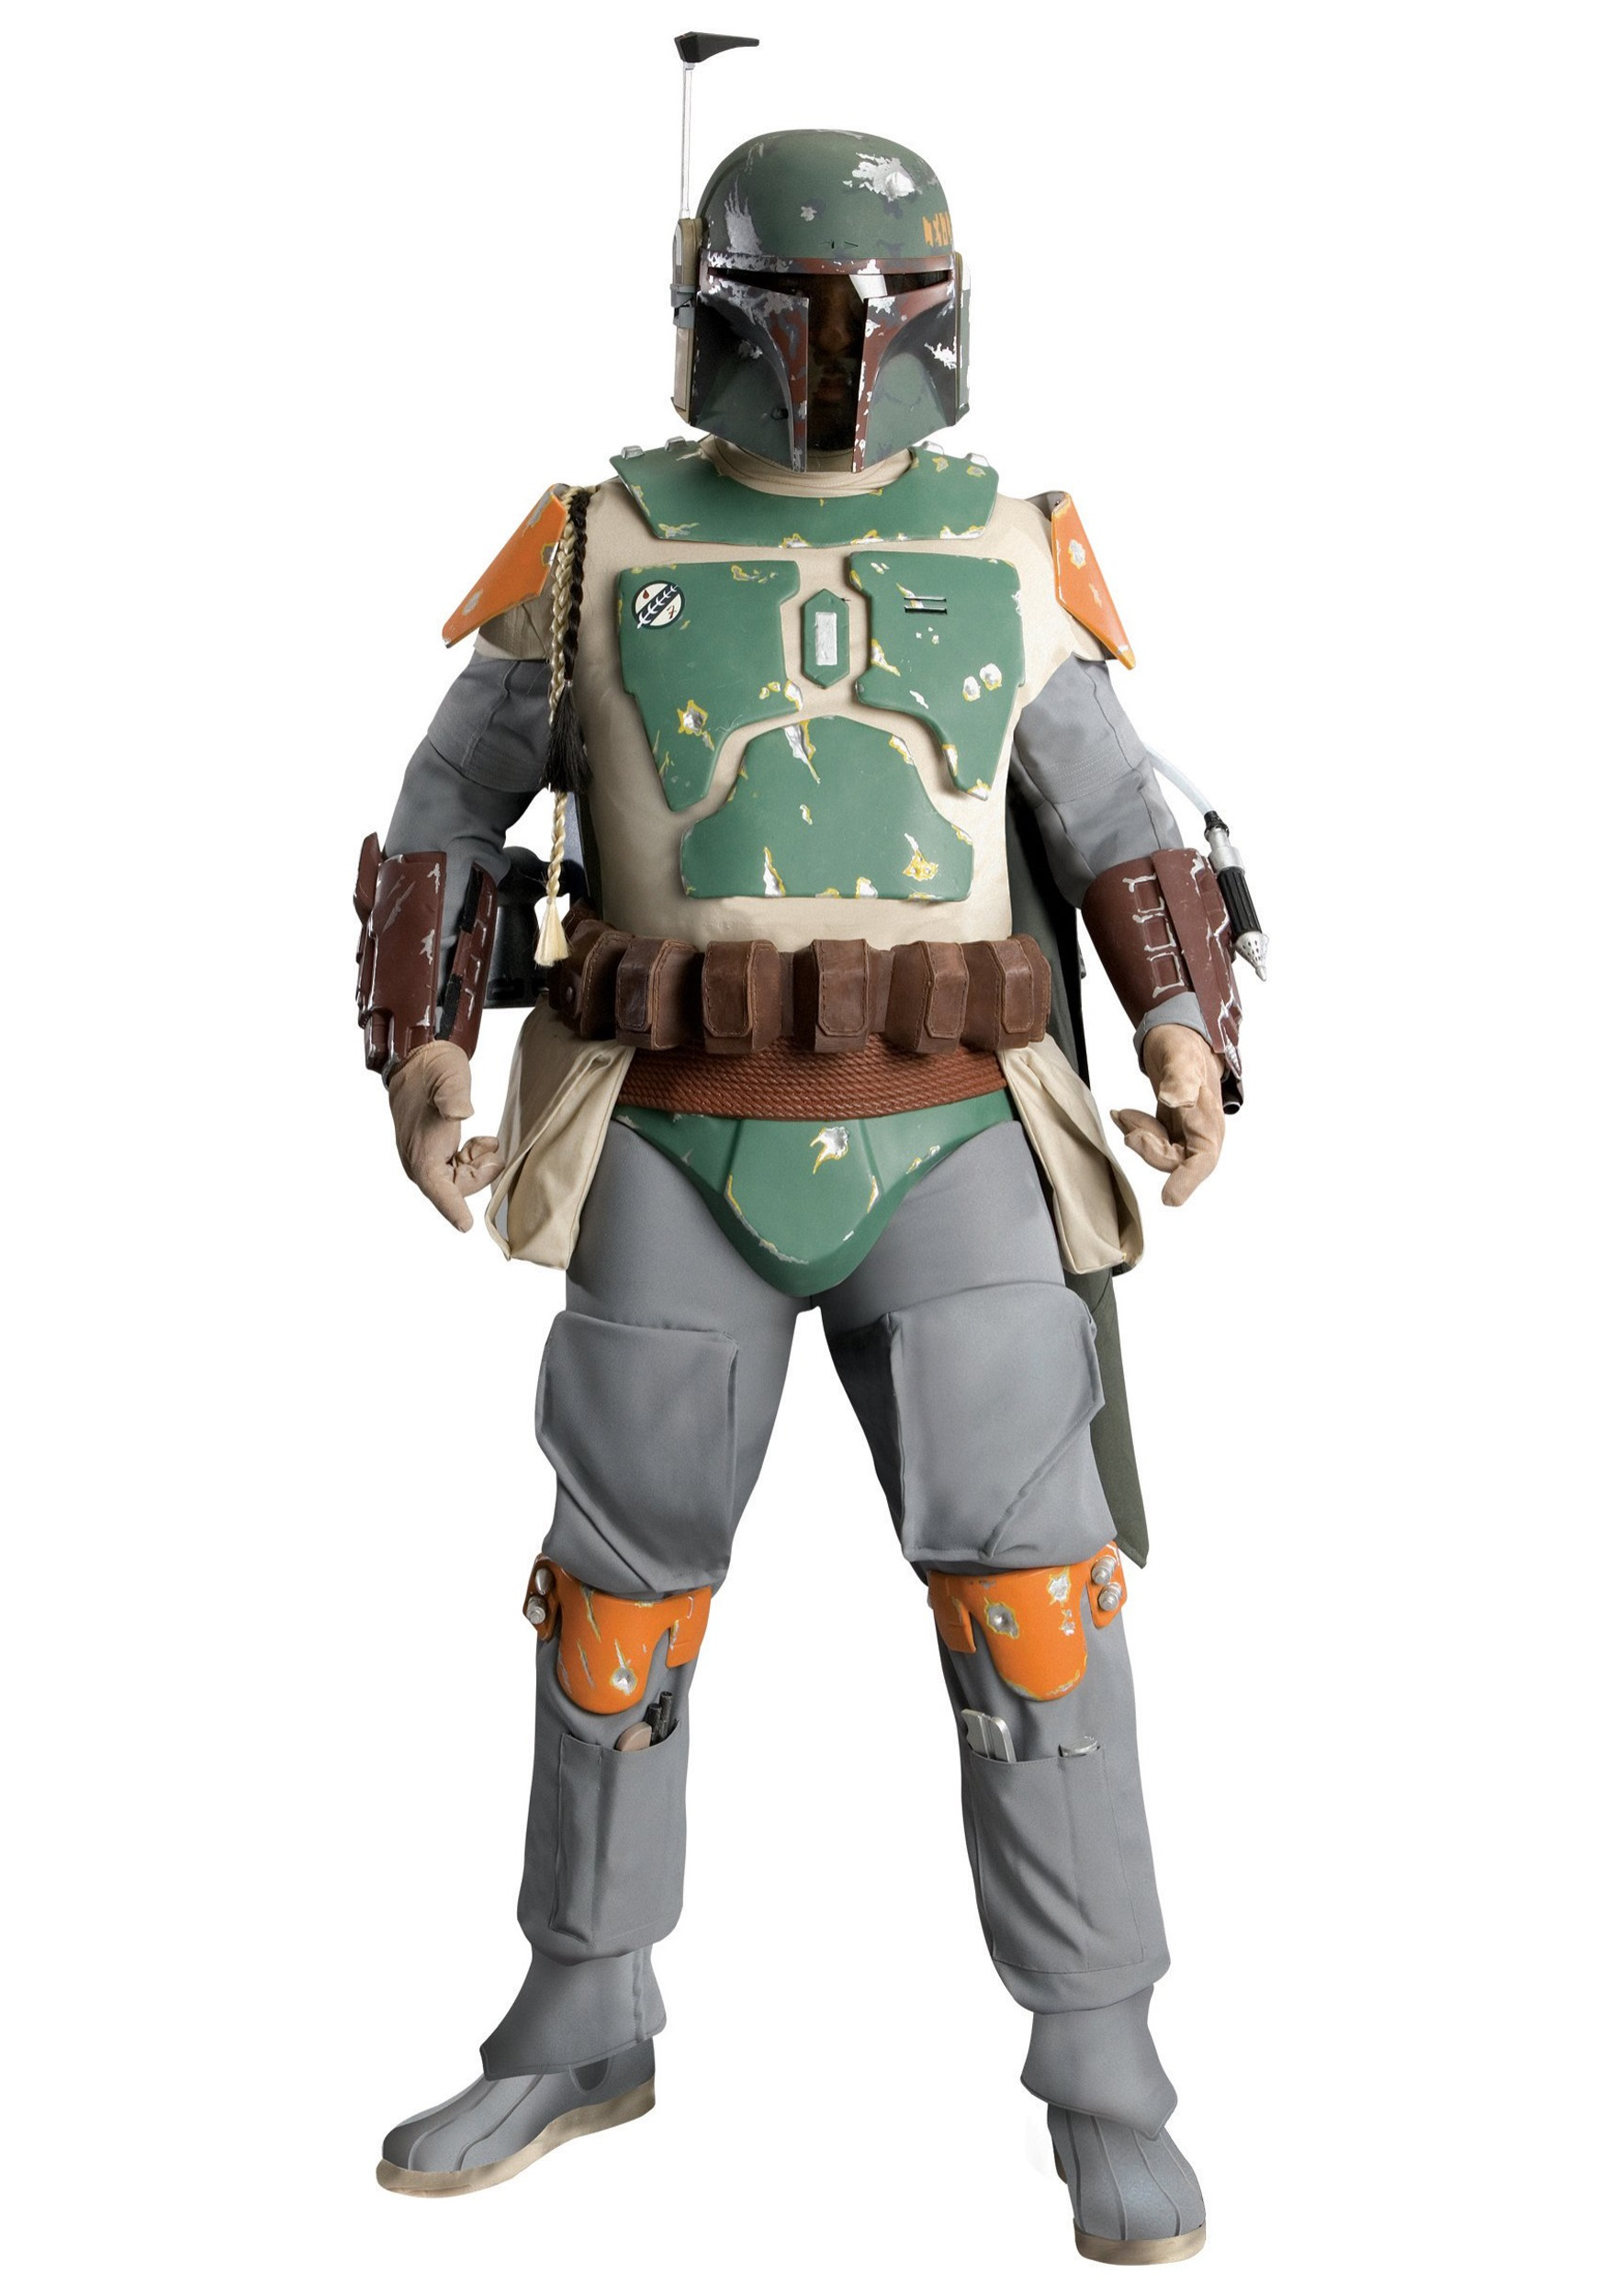 Ultimate Deluxe Boba Fett Costume from Star Wars